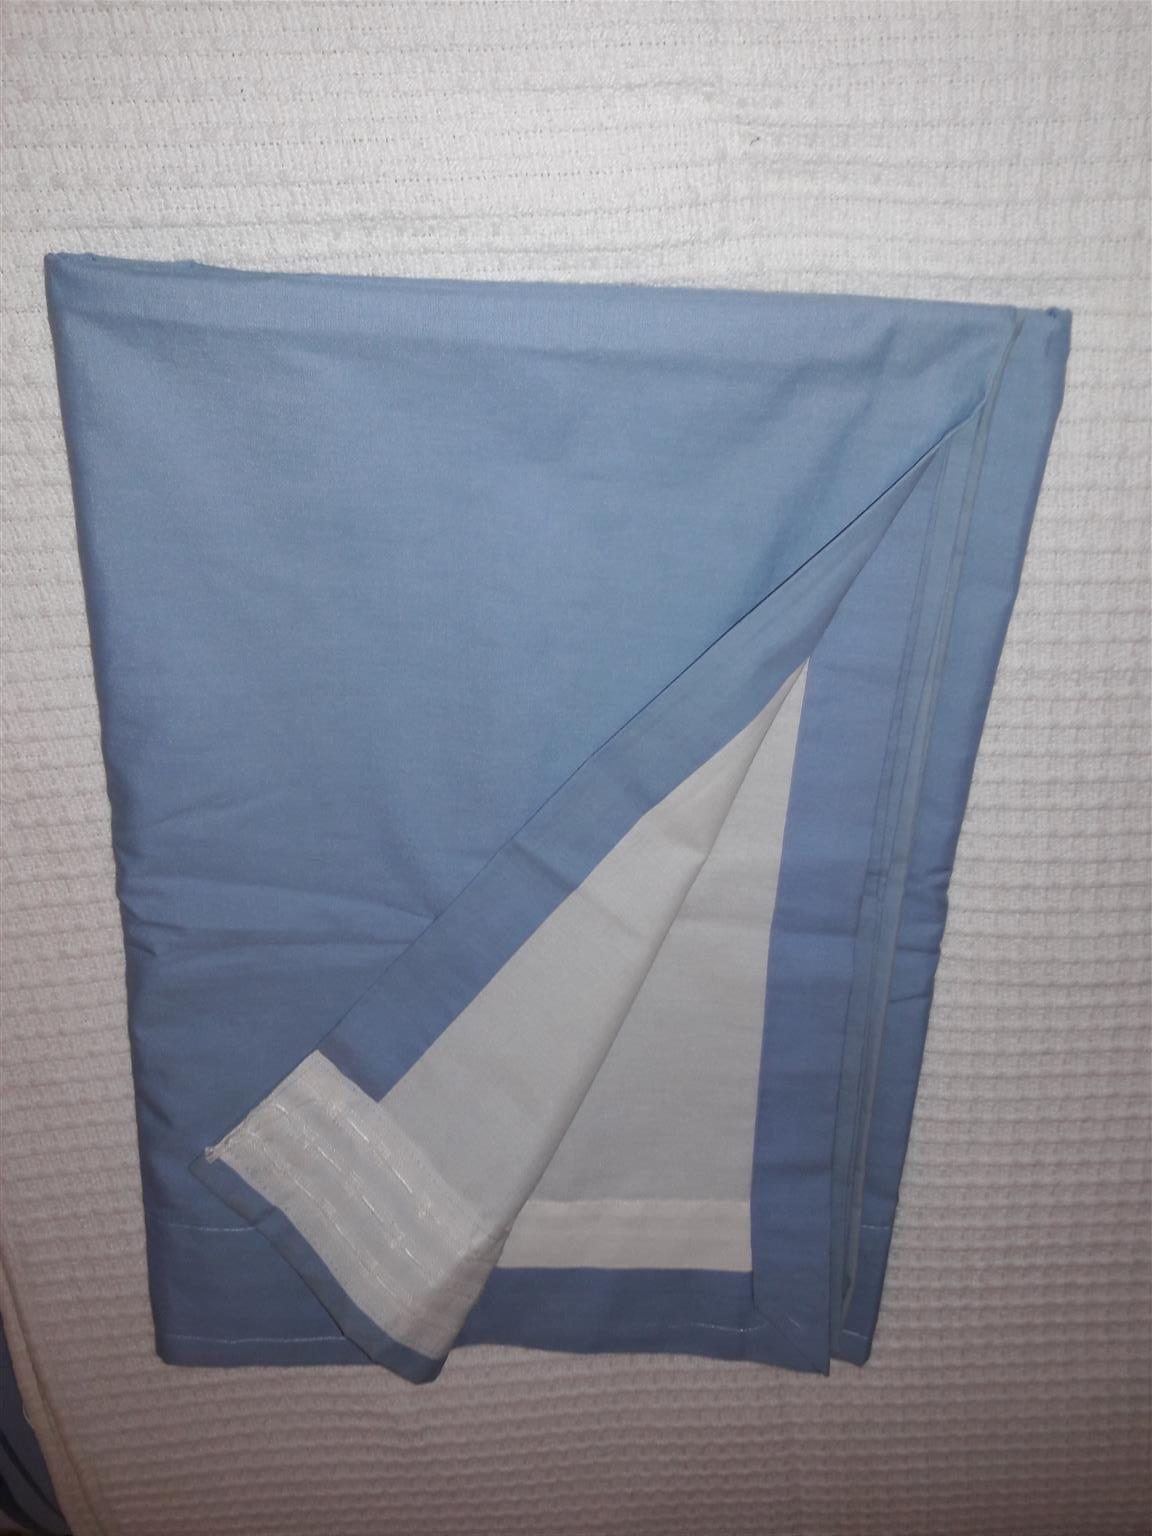 BEAUTIFUL AND IN GREAT CONDITION USED CURTAINS FOR SALE